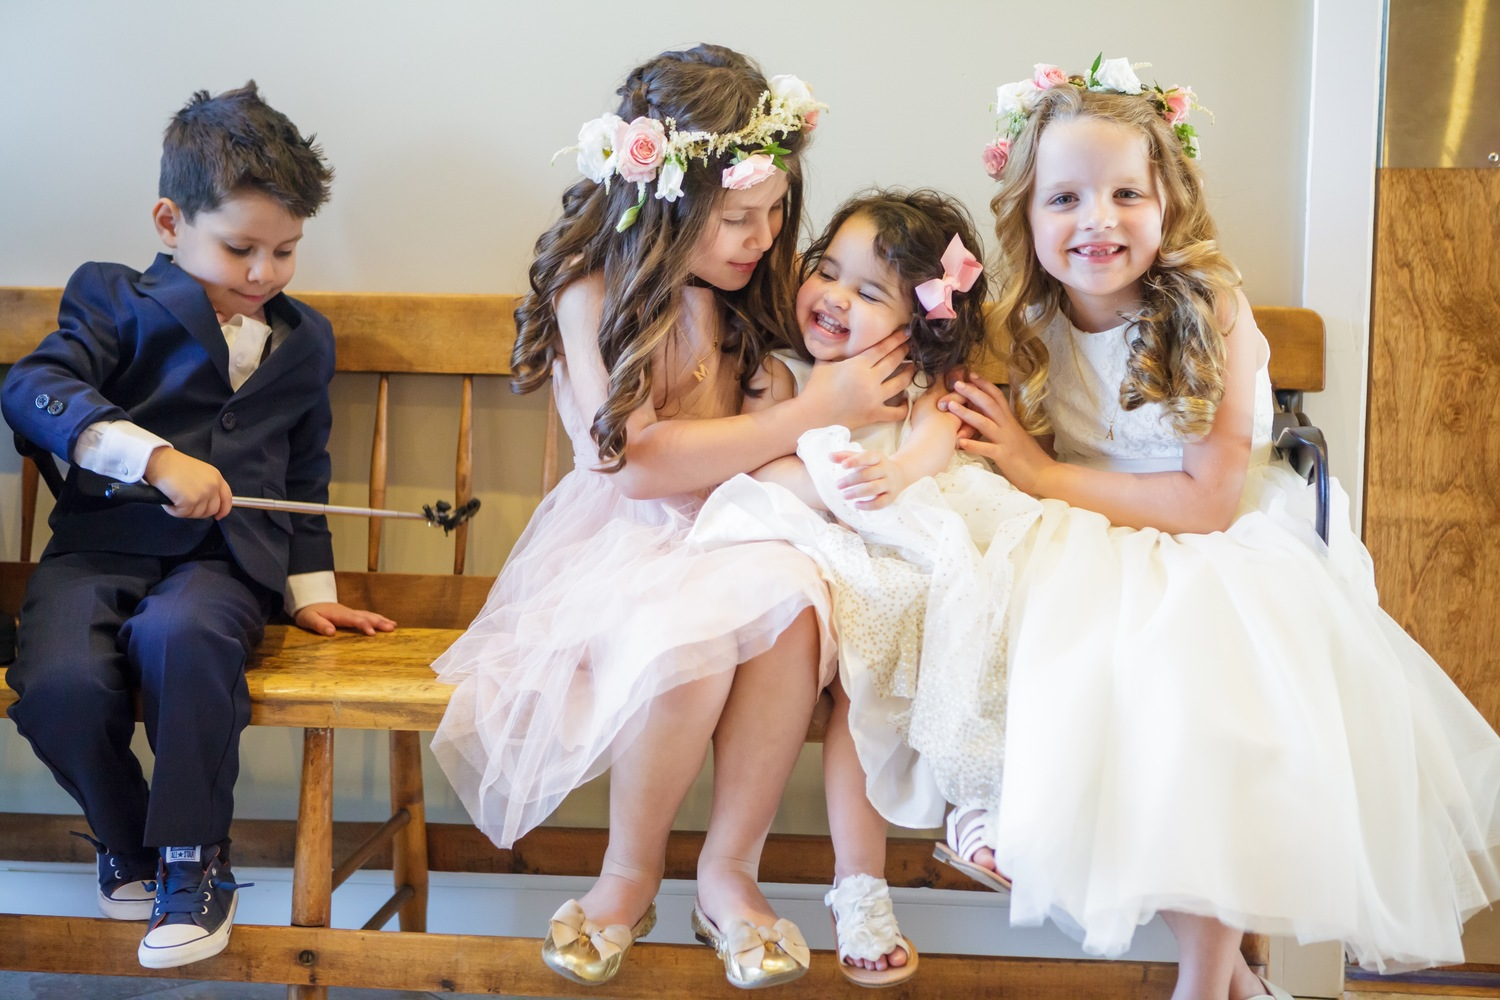 Preston Ridge Vineyard wedding flower girls flower crowns pink roses blush white.jpg